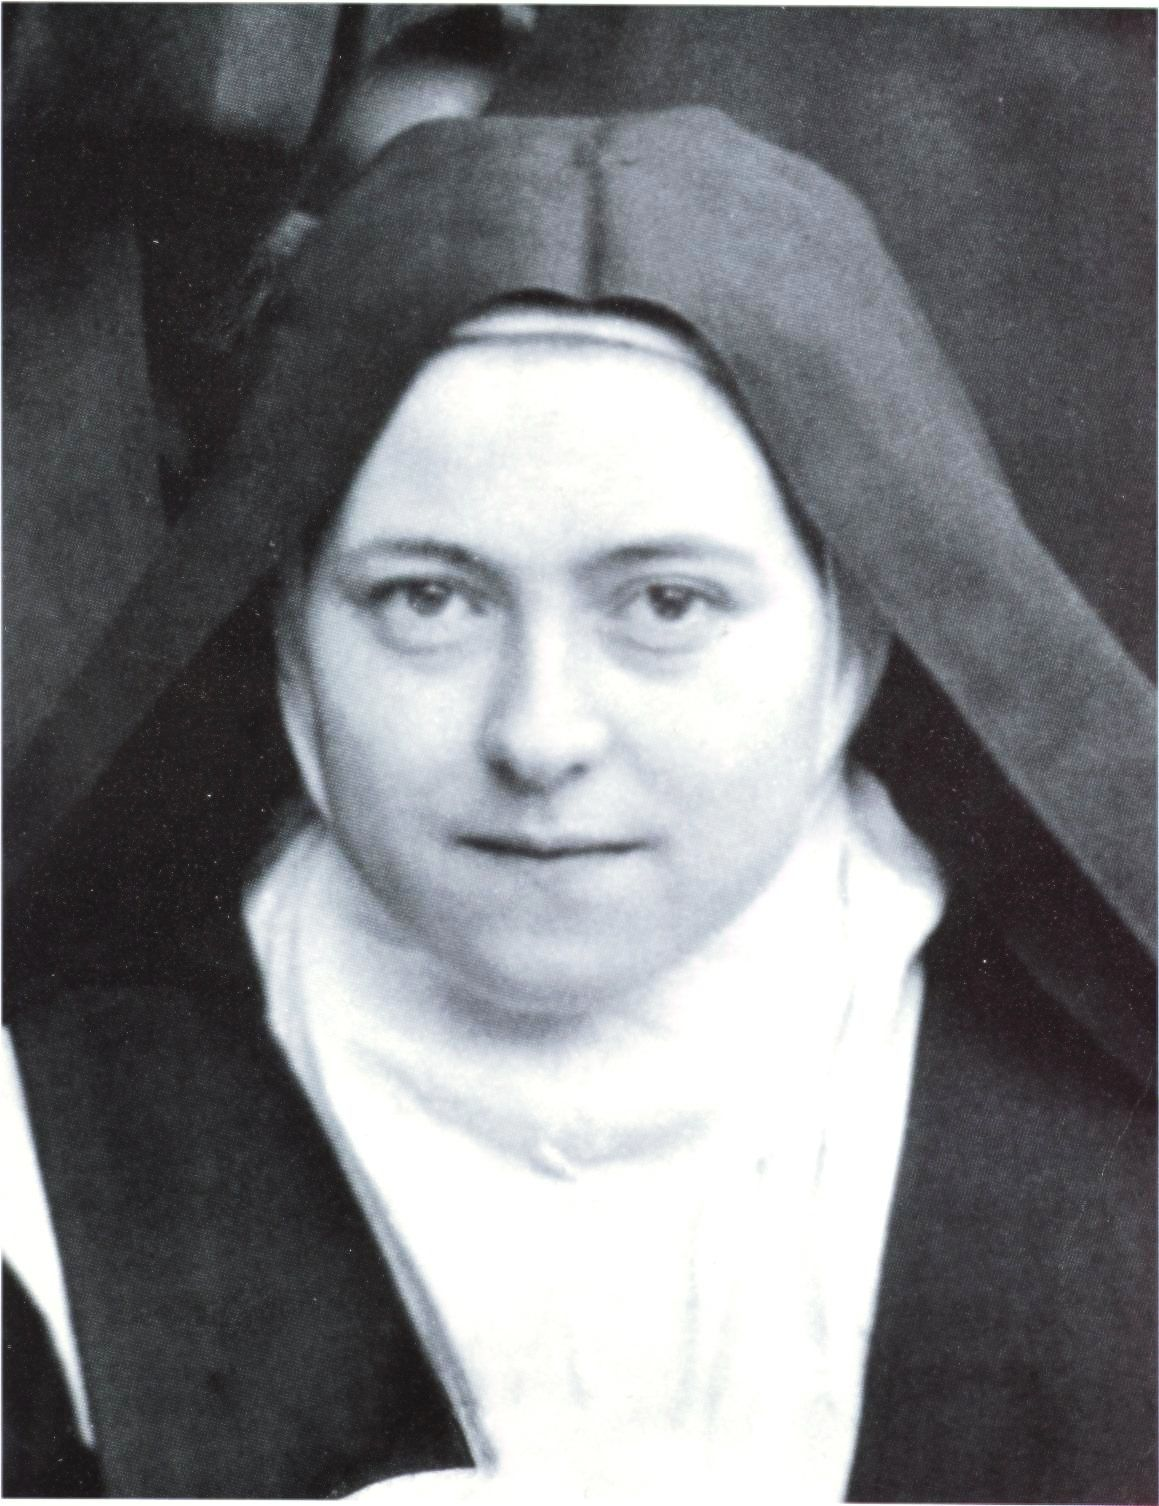 Saint Terese of Lisieux St therese of lisieux, Thérèse